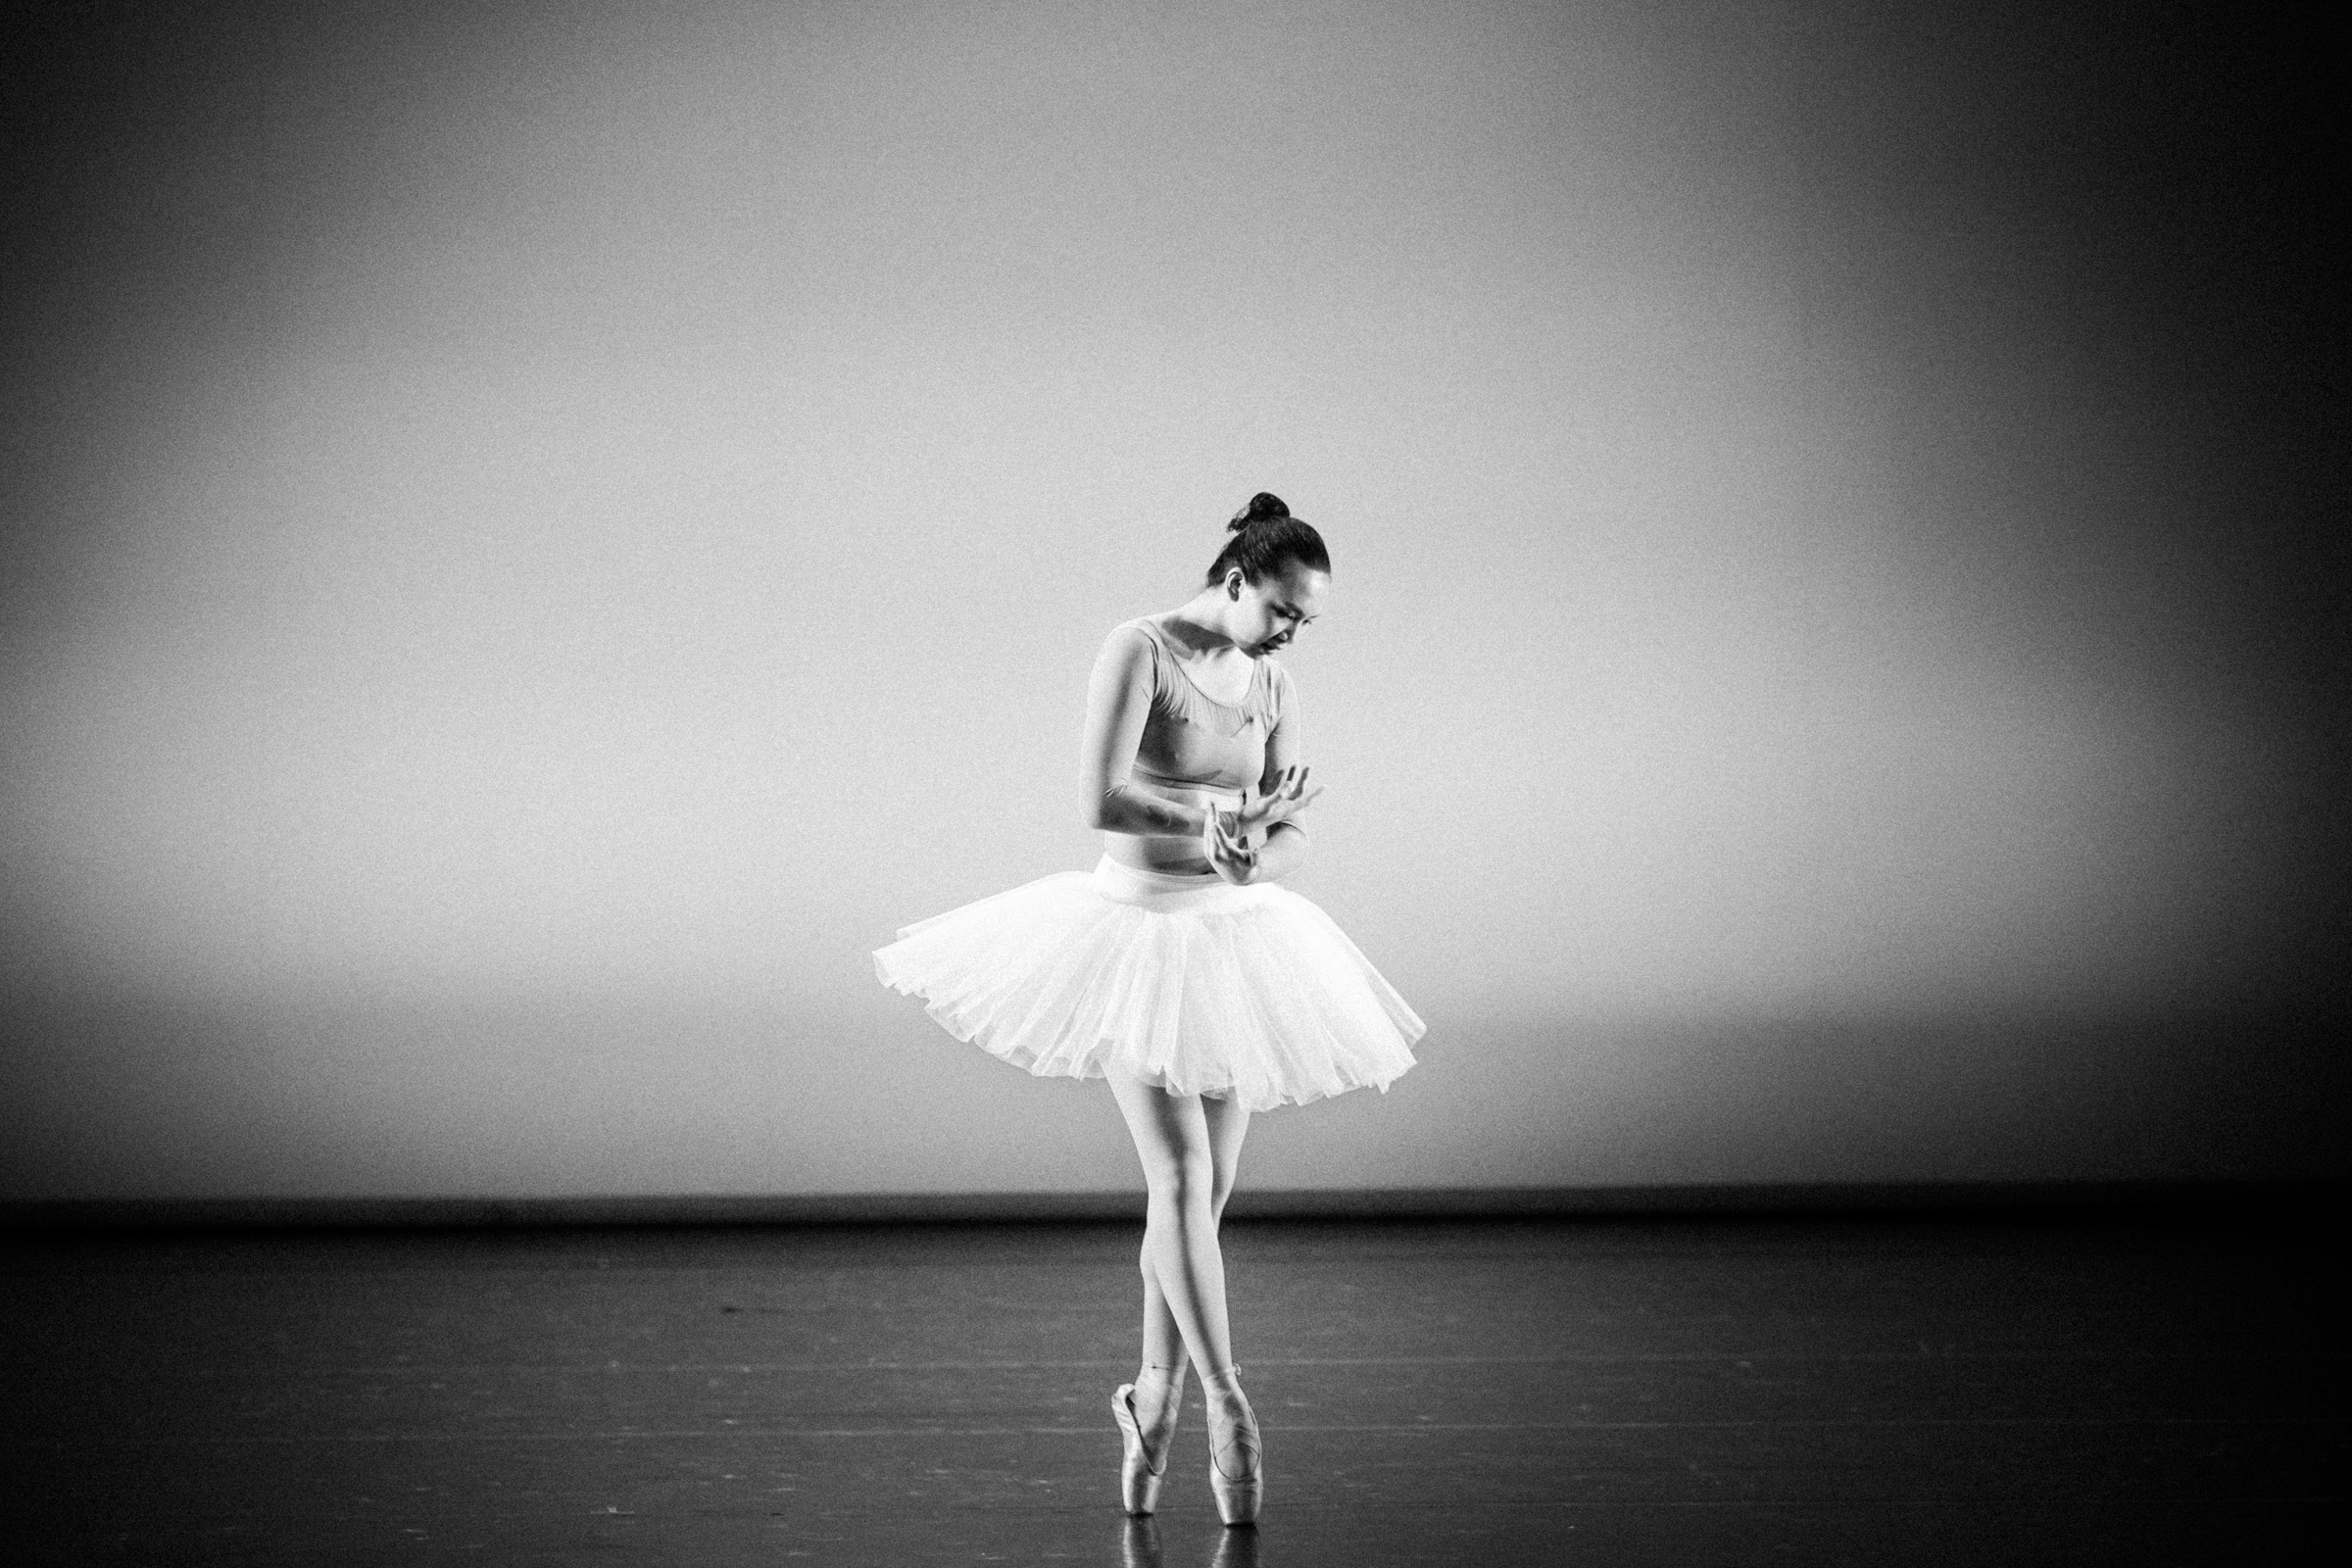 Ballet dancer in black and white on stage